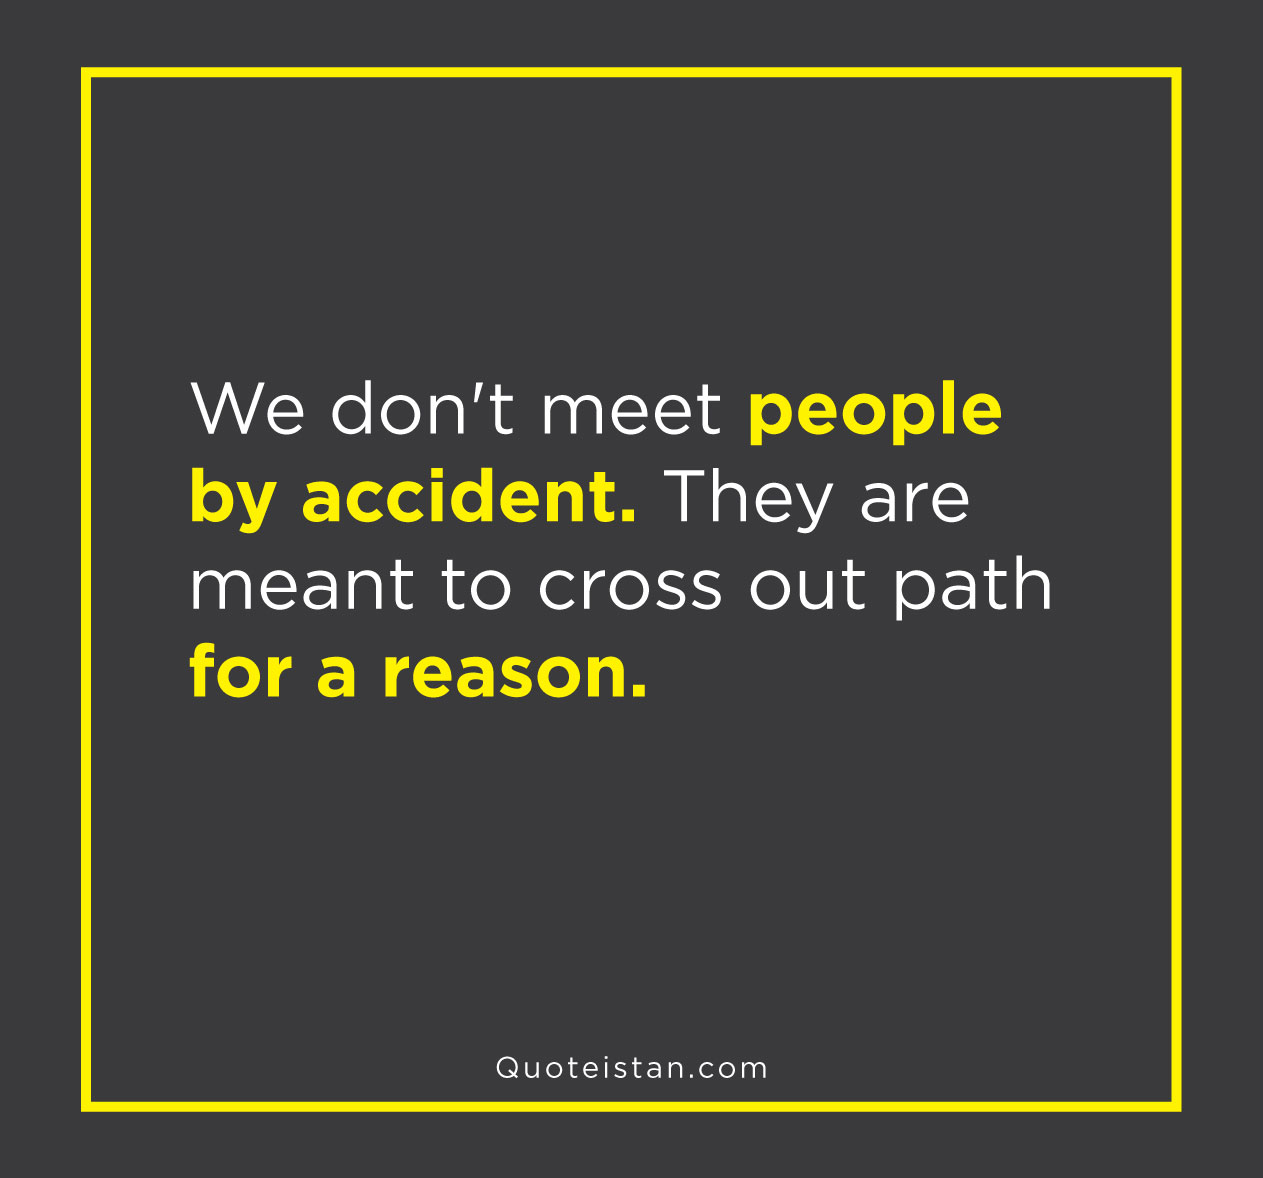 We don't meet people by accident. They are meant to cross out path for a reason.